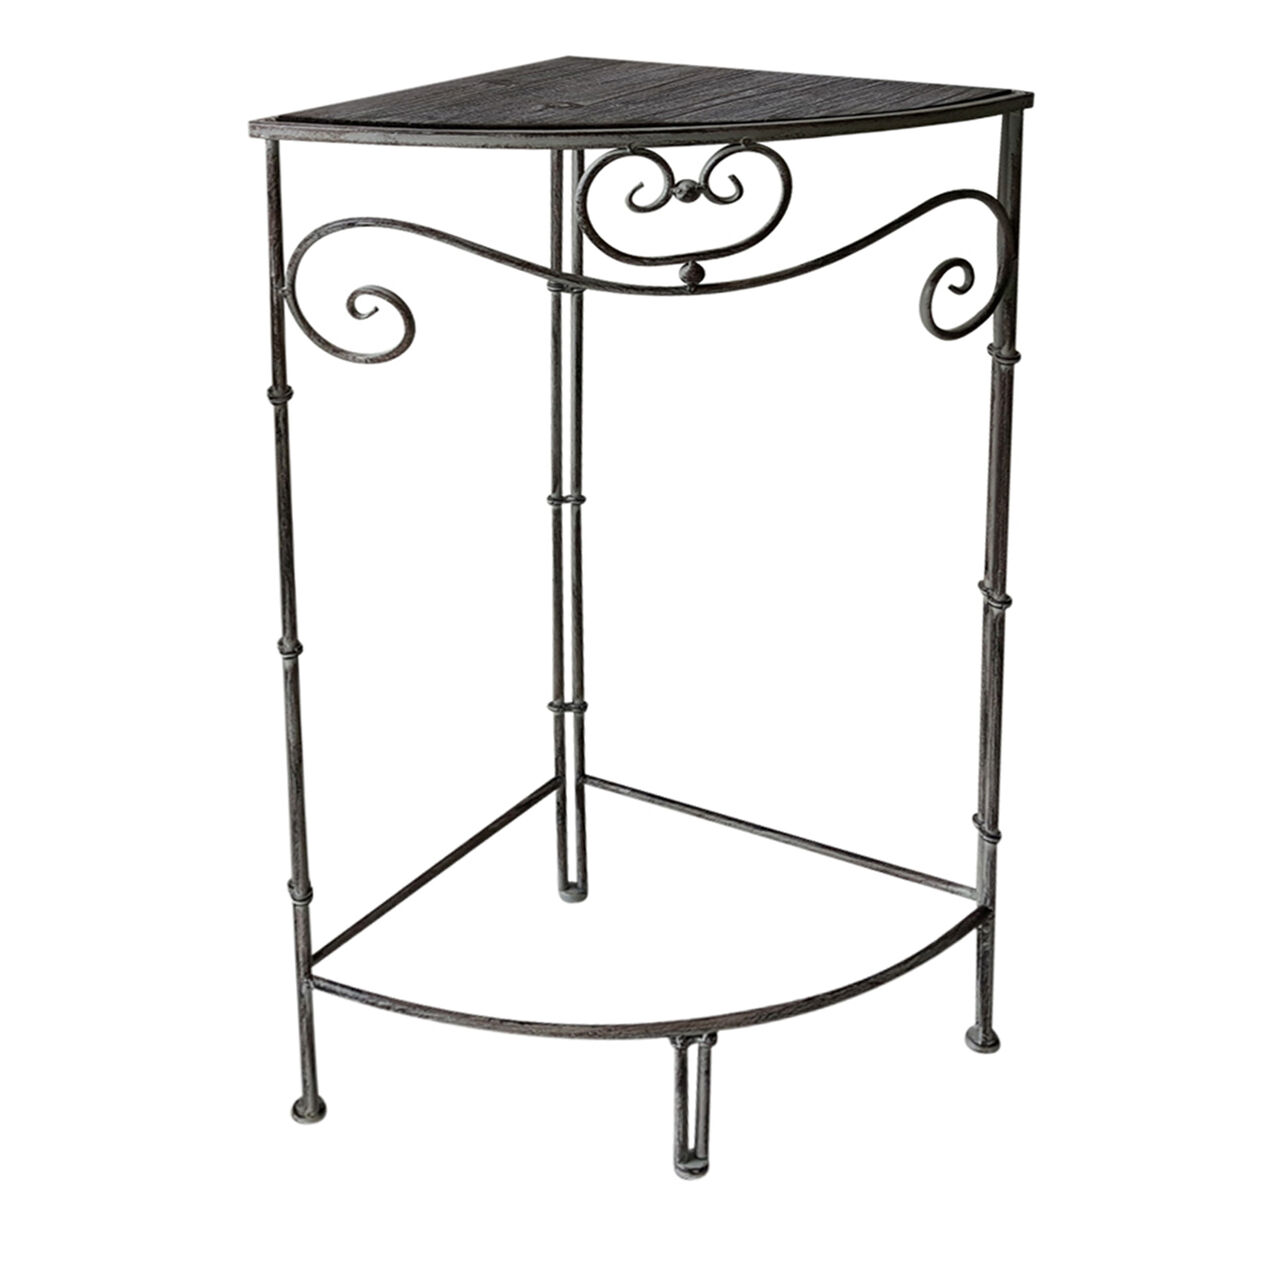 Nested Rustic Corner Plant Stand Small Sold Separately